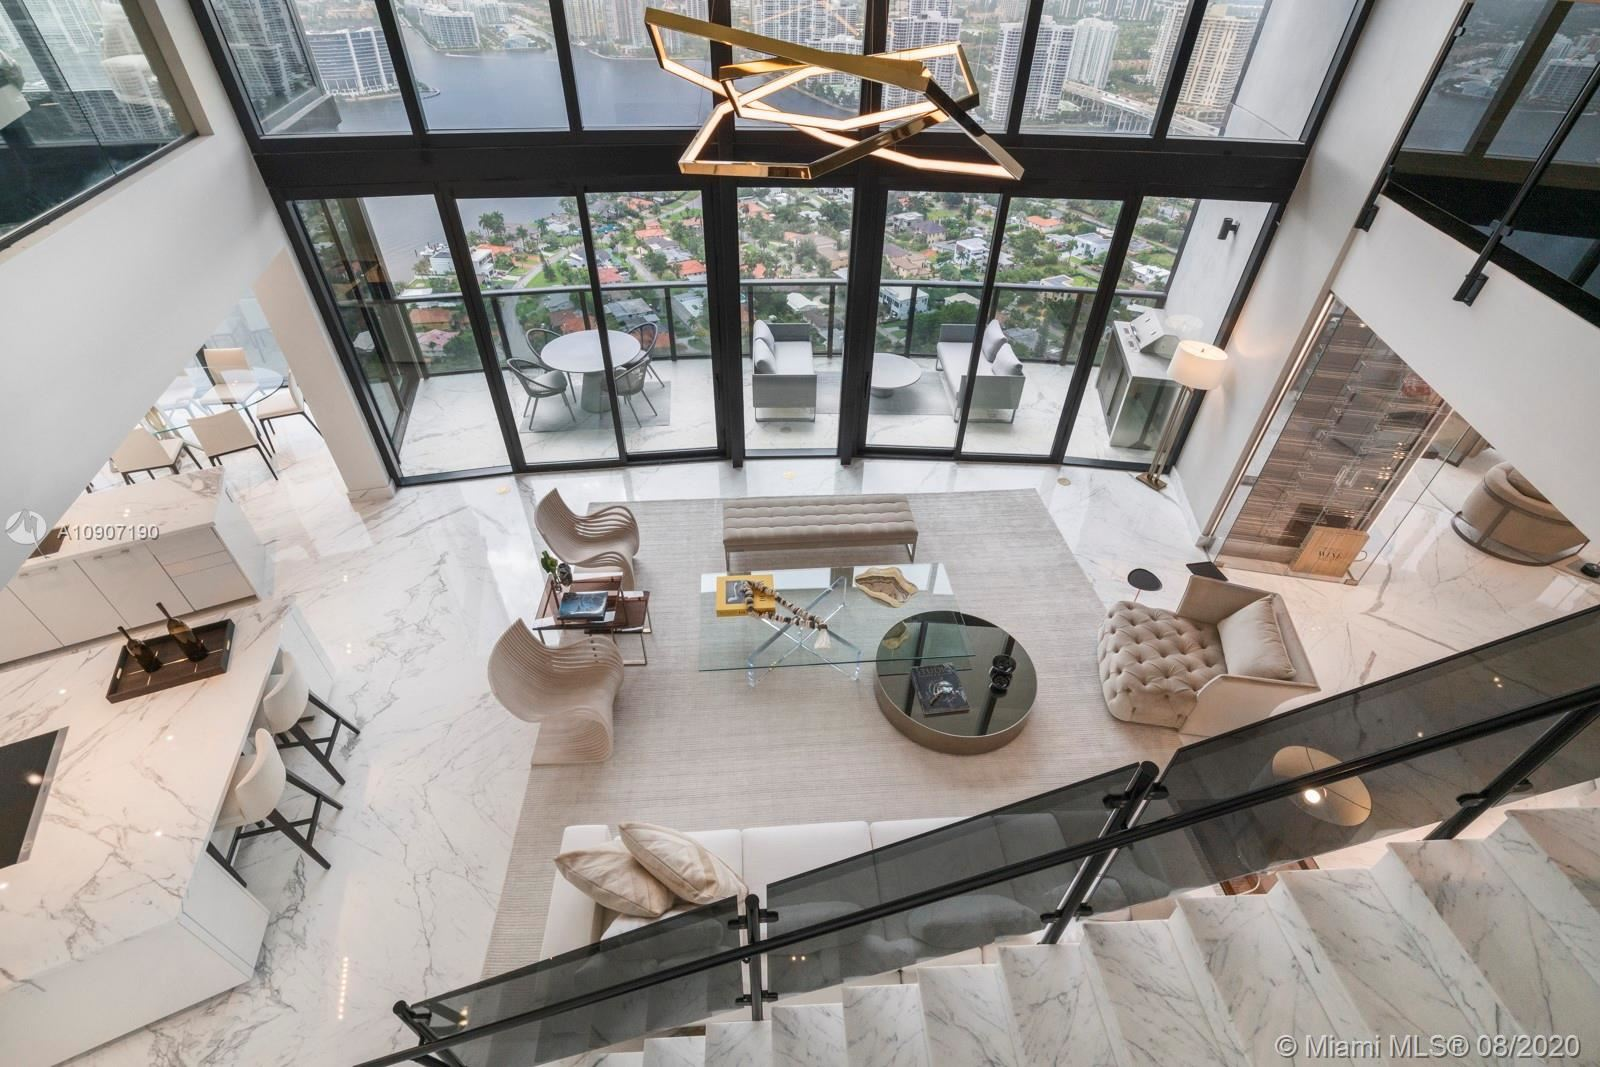 18555 Collins Ave #4204, Sunny Isles, FL 33160 - #: A10907190